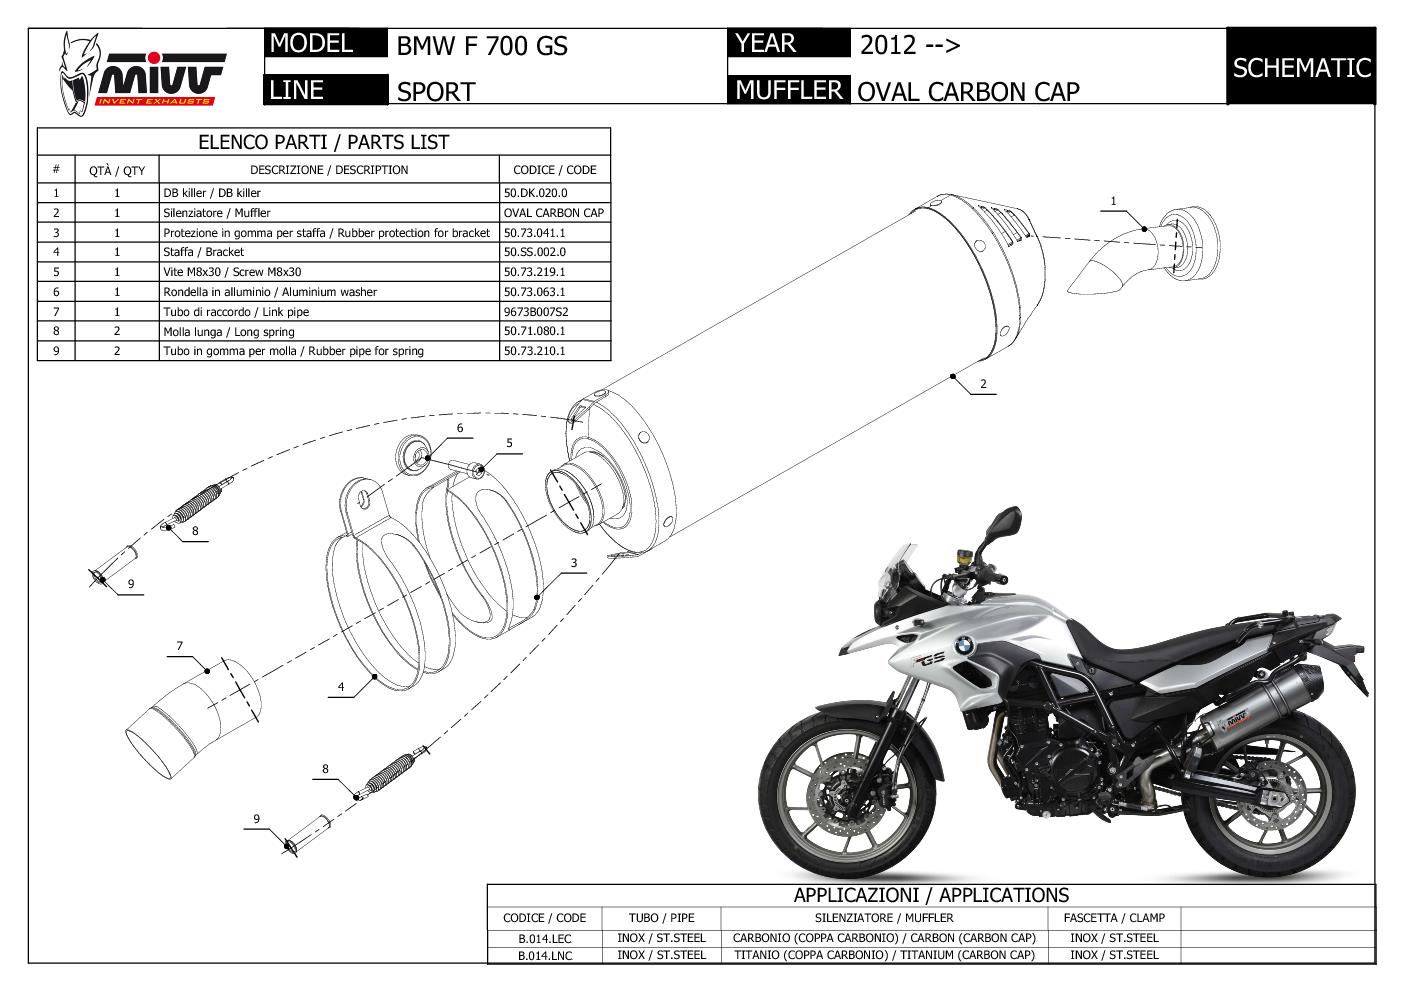 Mivv Exhaust Muffler Oval Carbon Fiber With Carbon Cap Bmw F 700 Gs Gt